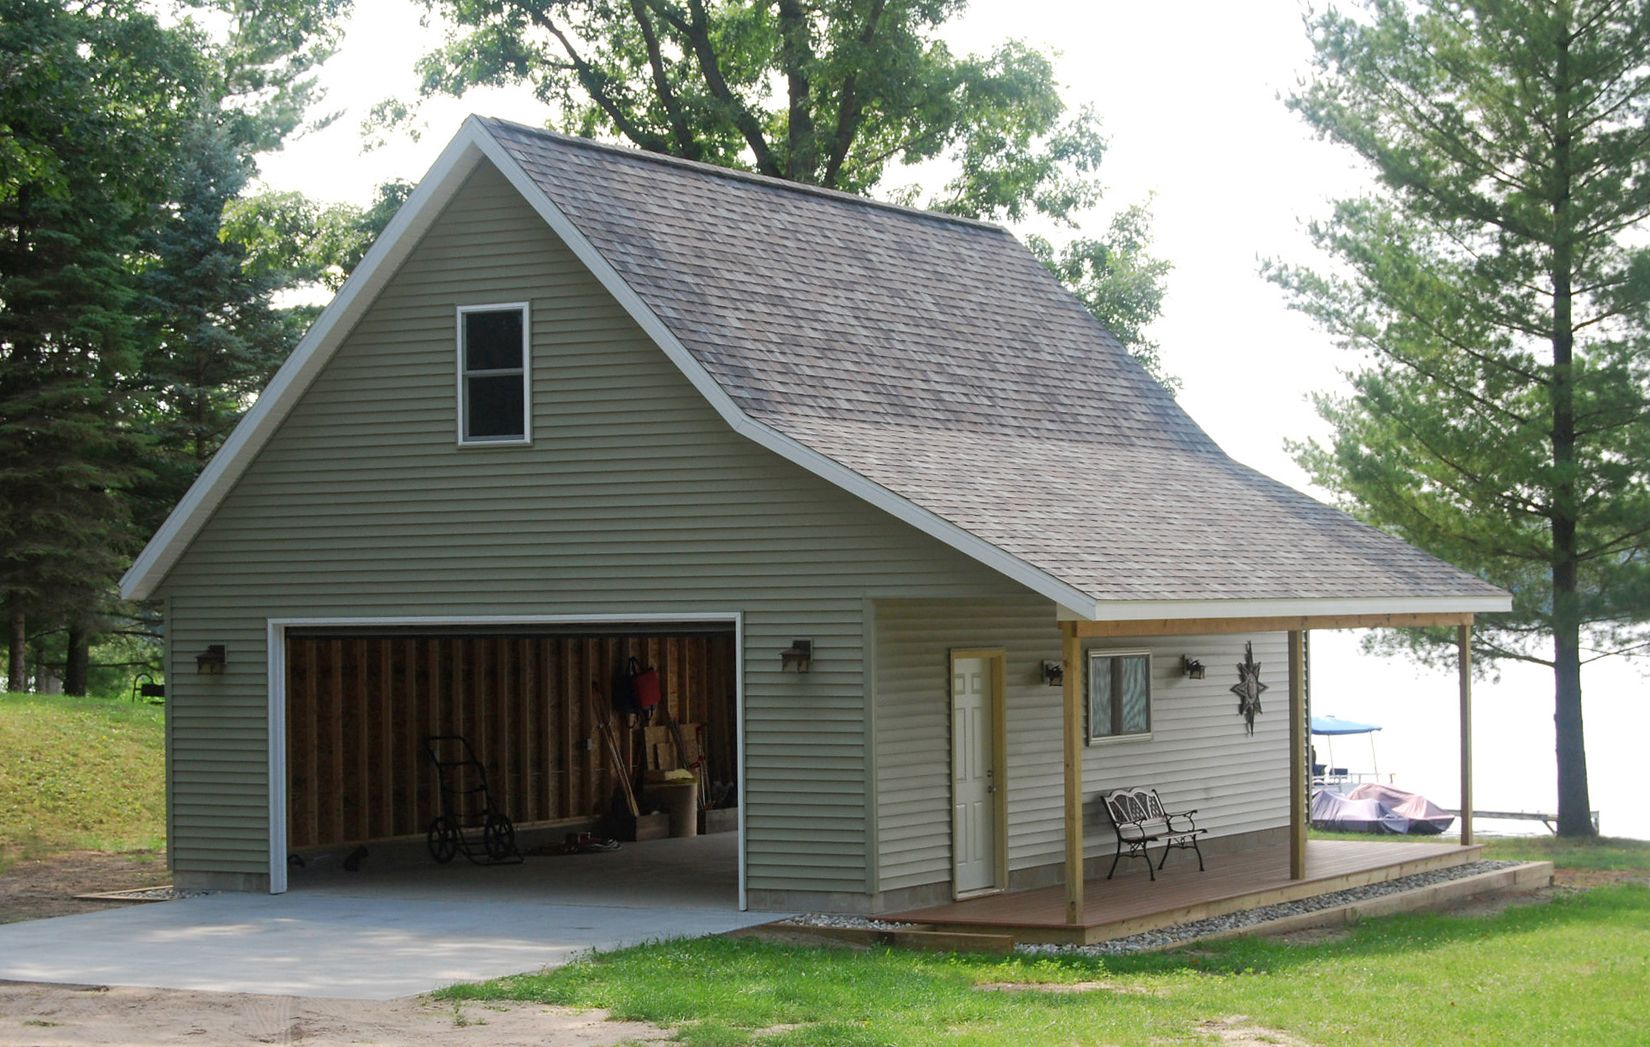 Pole barn garage plans welcome to jb custom homes where for Pole barn garage plans